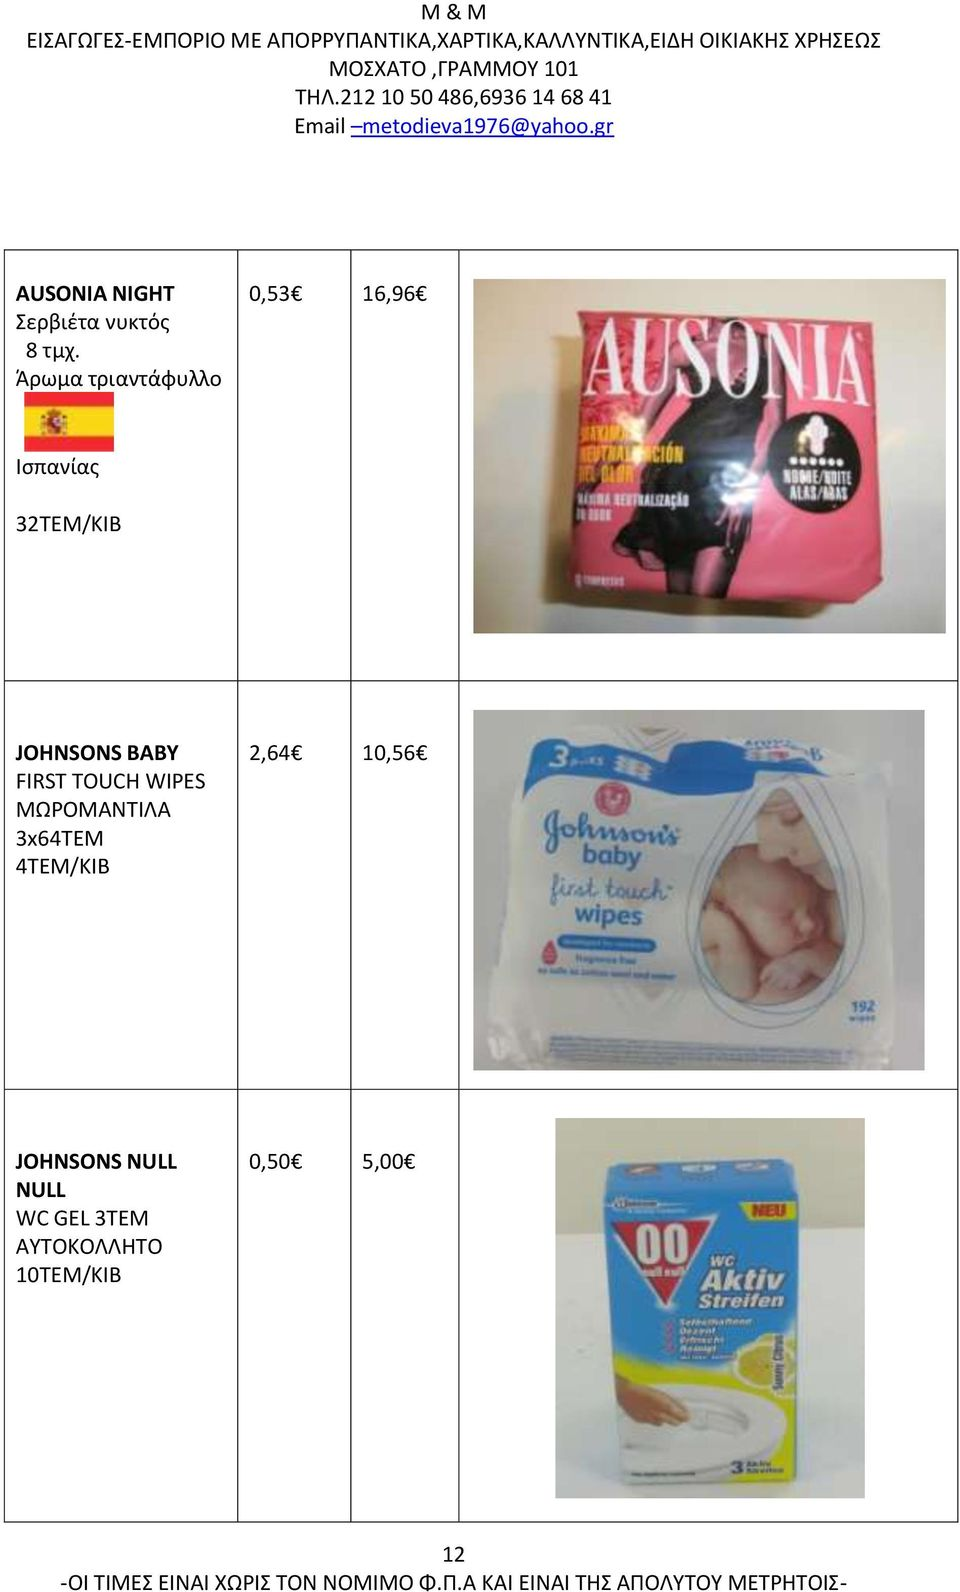 JOHNSONS BABY FIRST TOUCH WIPES ΜΩΡΟΜΑΝΤΙΛΑ 3x64ΤΕΜ